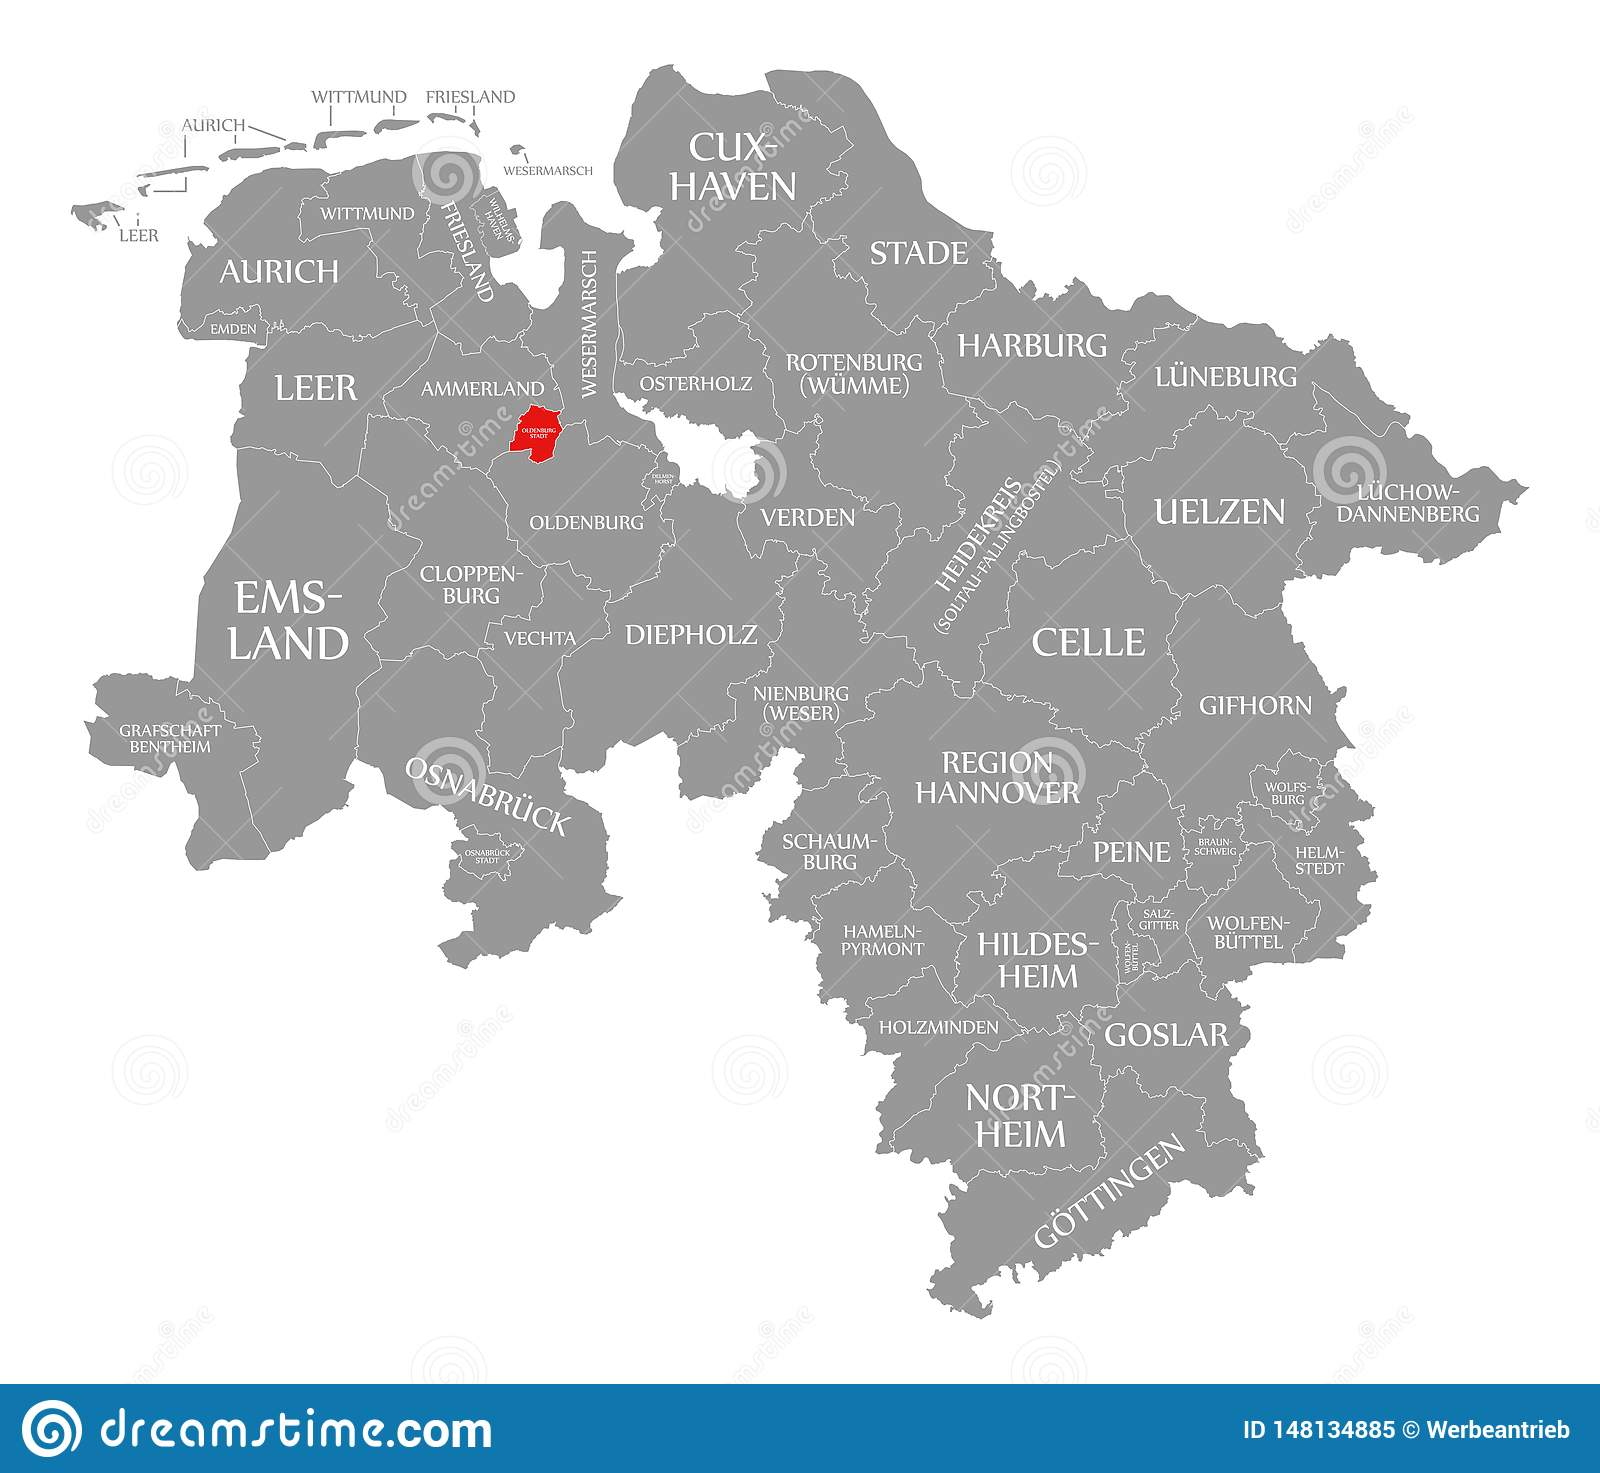 Maps Oldenburg Oldenburg City County Red Highlighted In Map Of Lower Saxony Germany